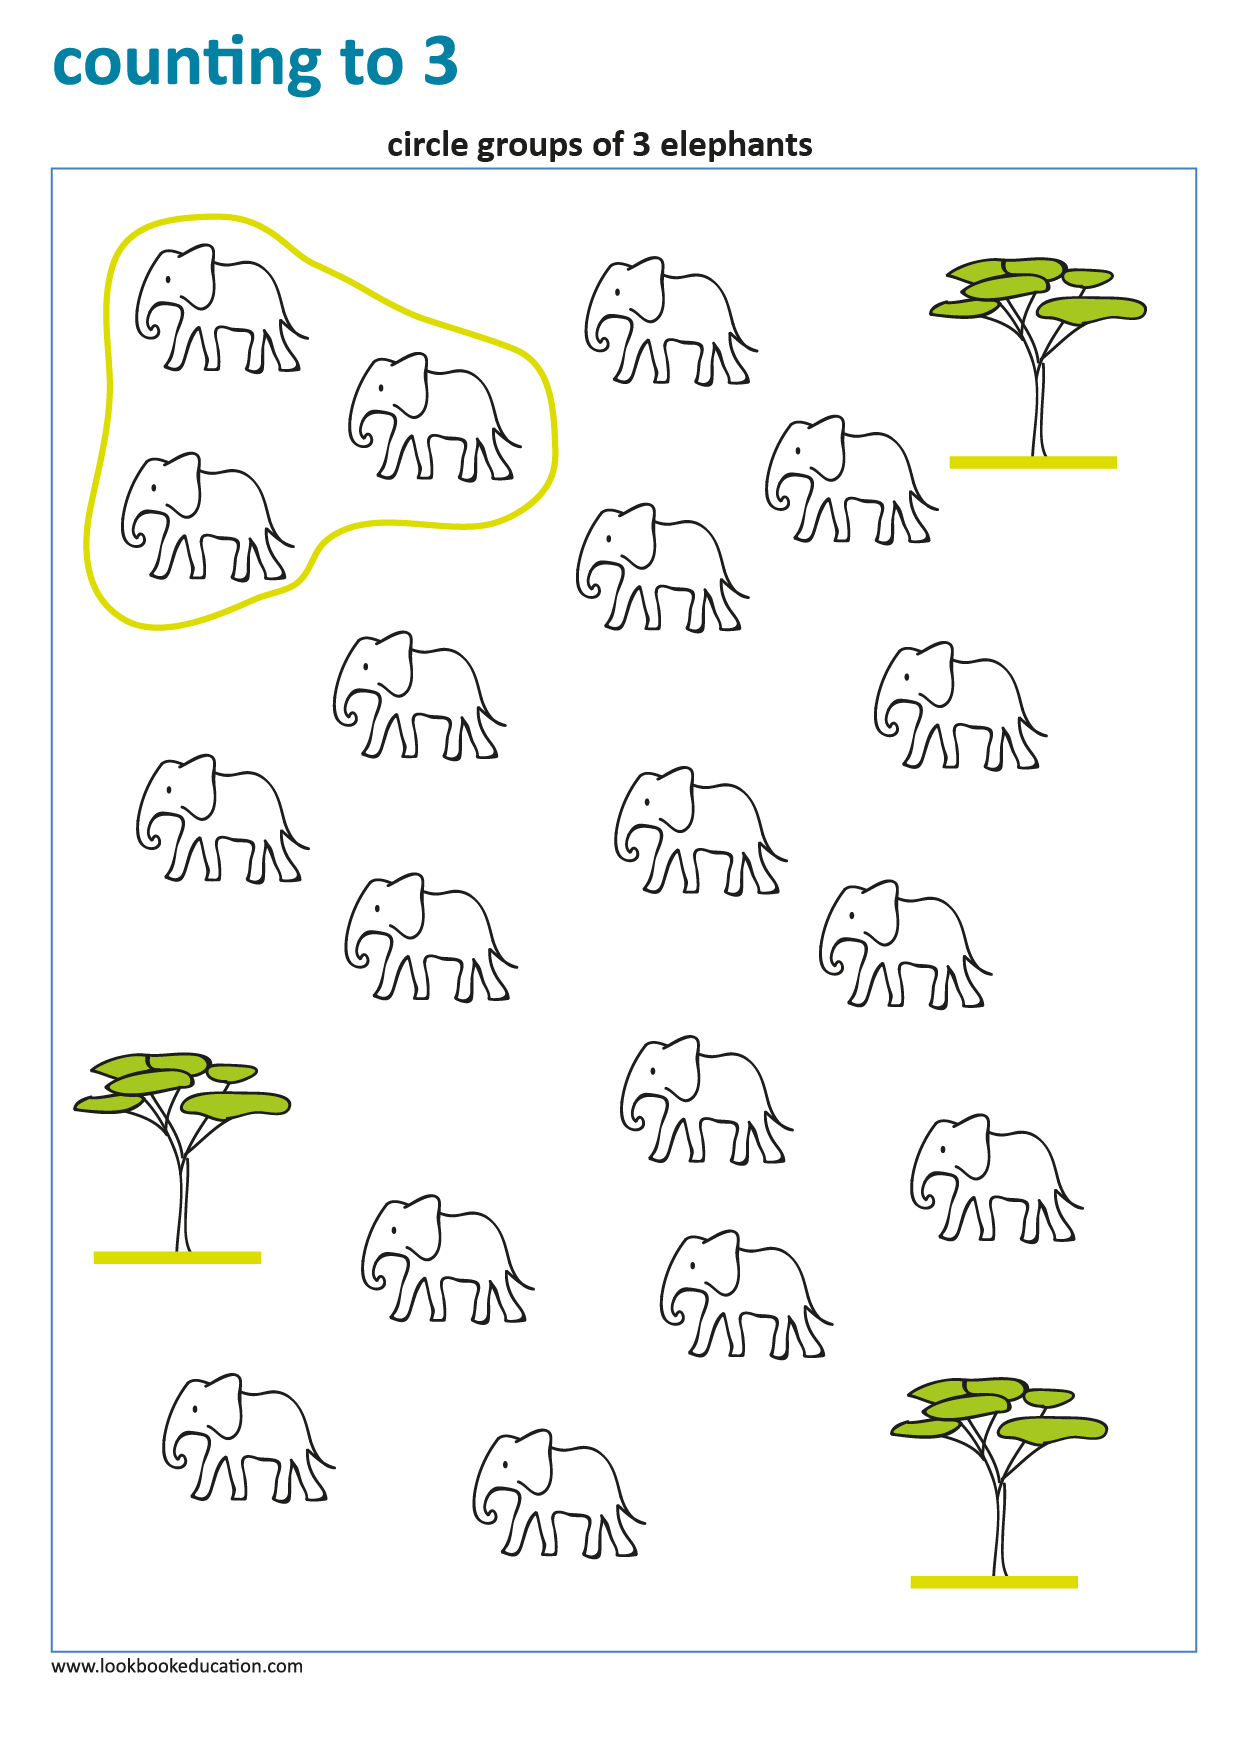 Worksheet Counting Groups Of 3 Elephants